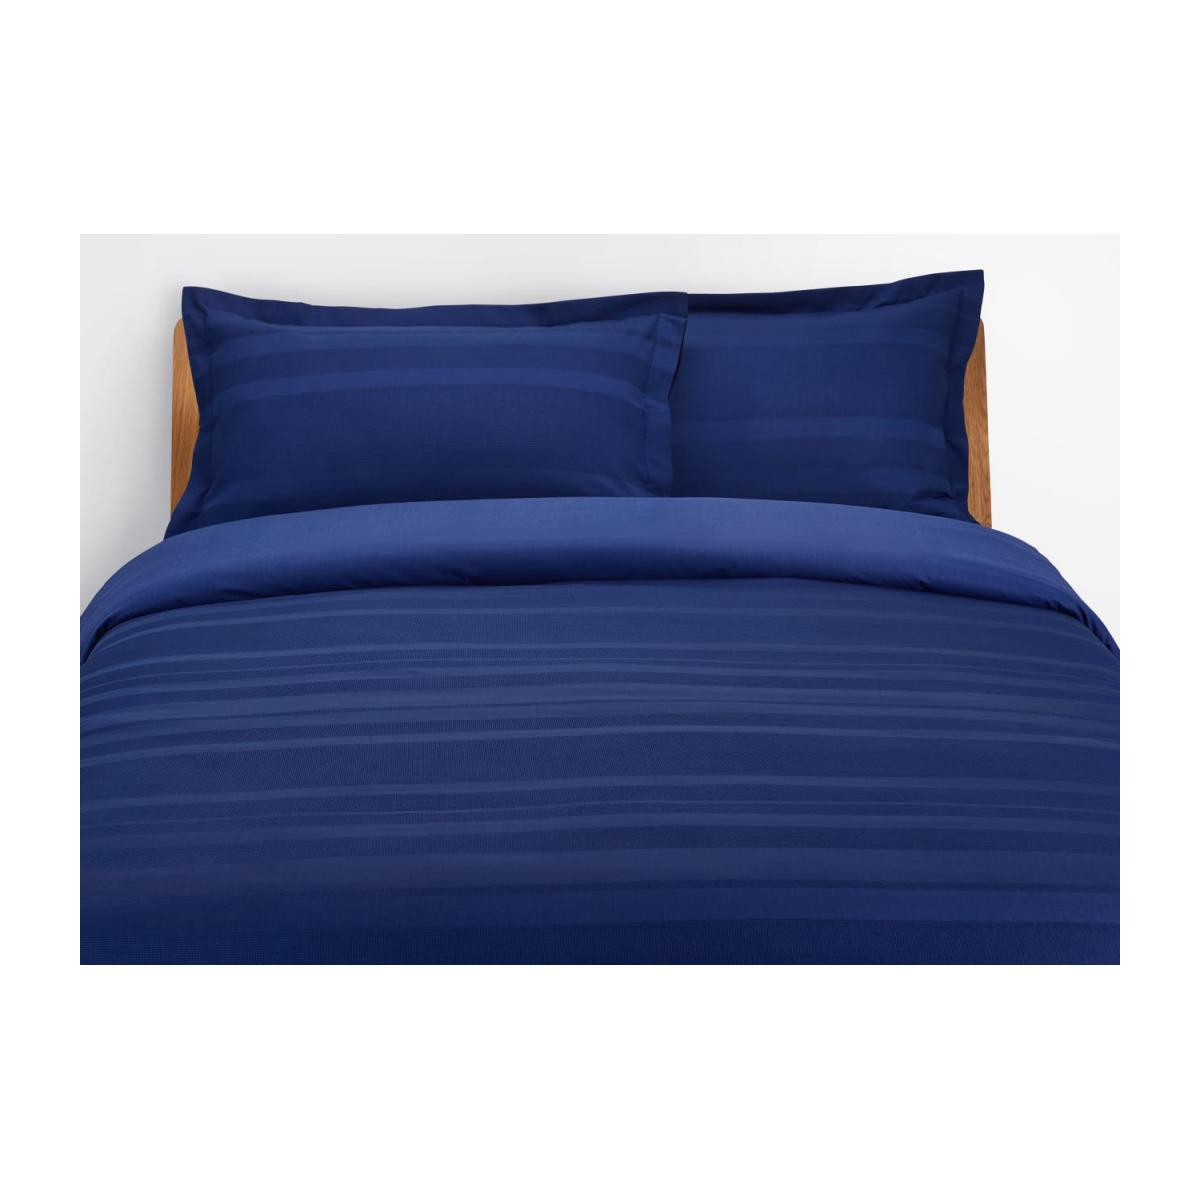 Duvet-cover 260x240, blue n°1